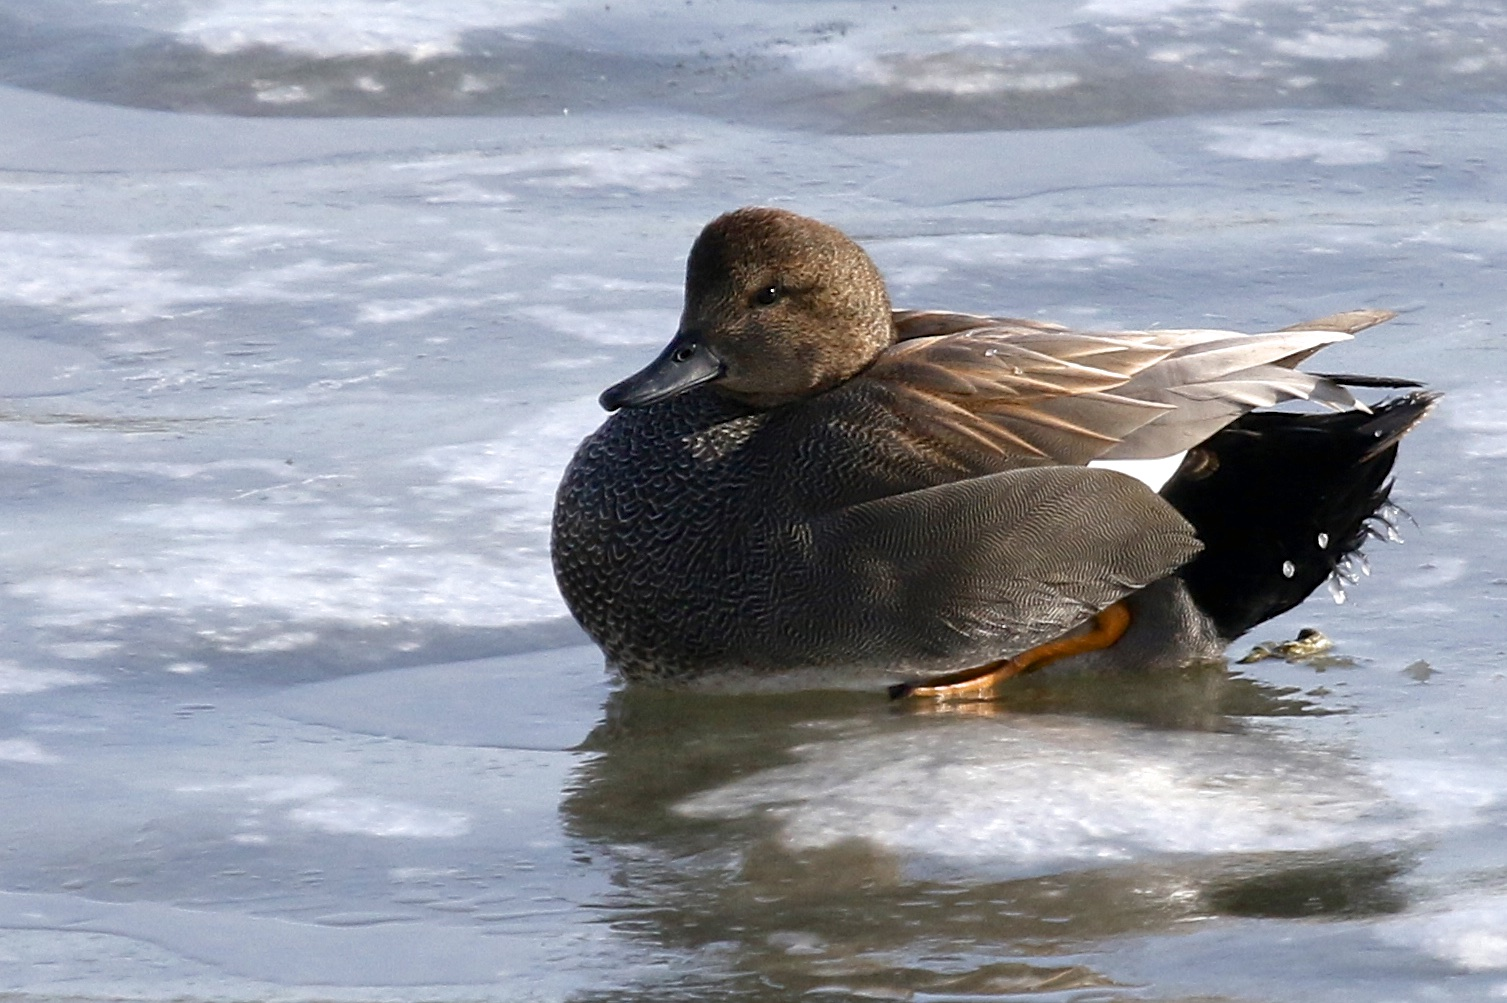 ~Gadwall at the Edith G Read Wildlife Sanctuary in Rye, NY 2/21/15.~